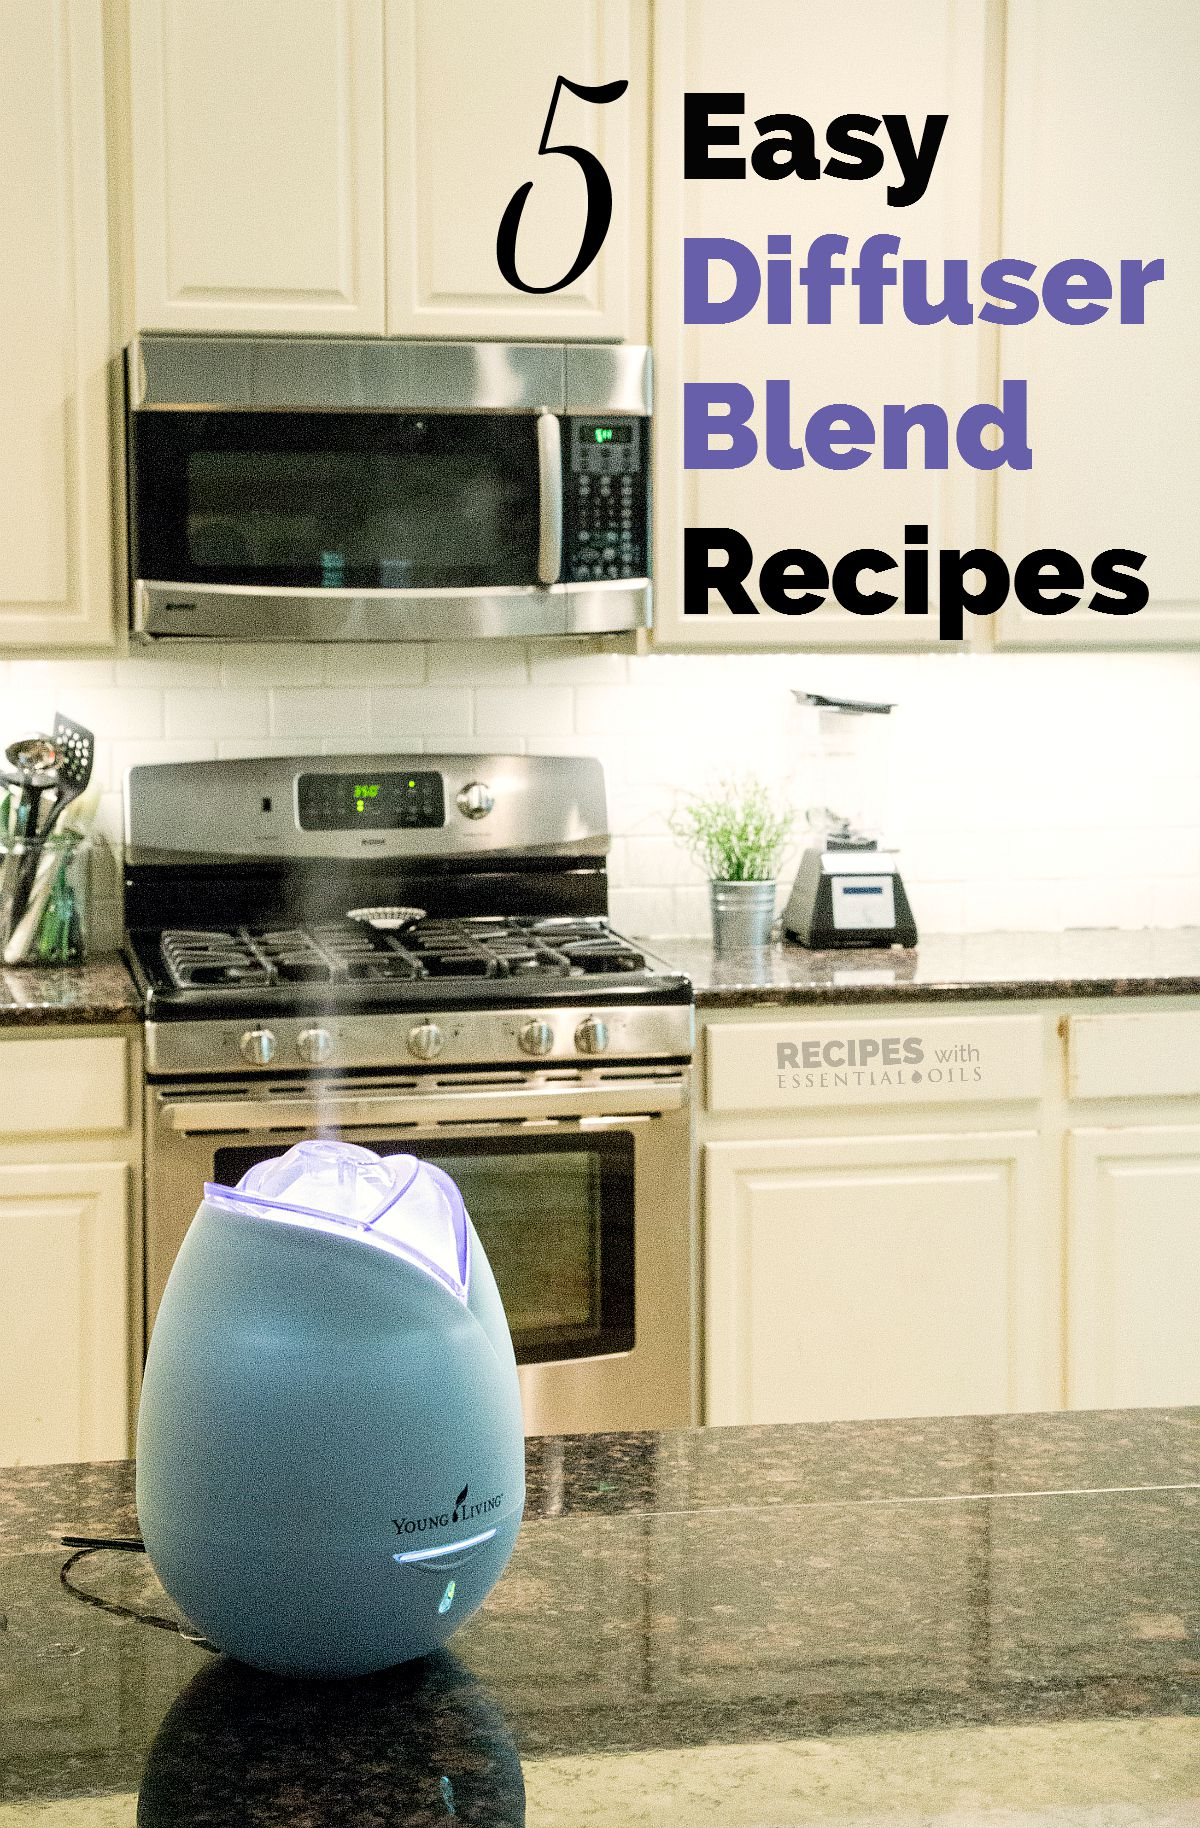 5 Easy Diffuser Blend Recipes from RecipesWithEssentialOils.com